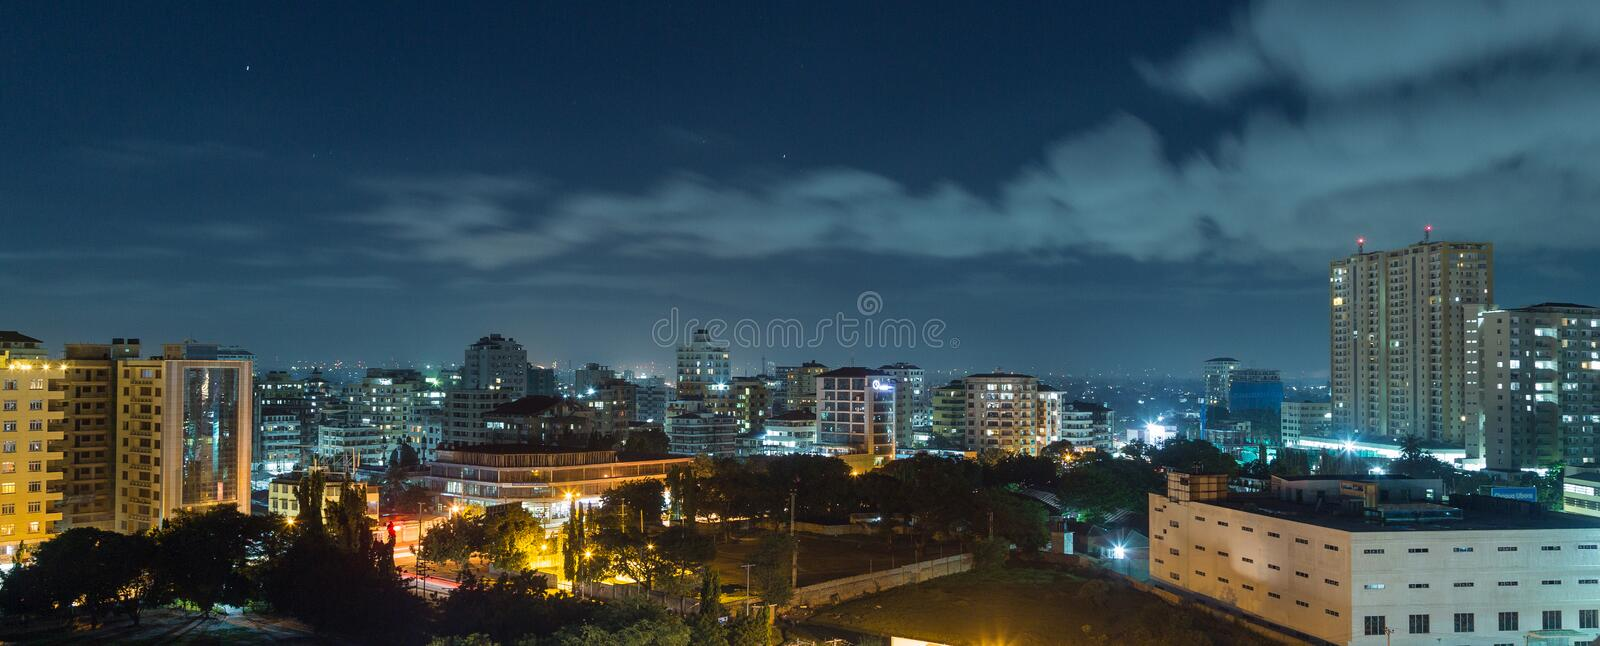 Downtowm Dar Es Salaam la nuit photo libre de droits